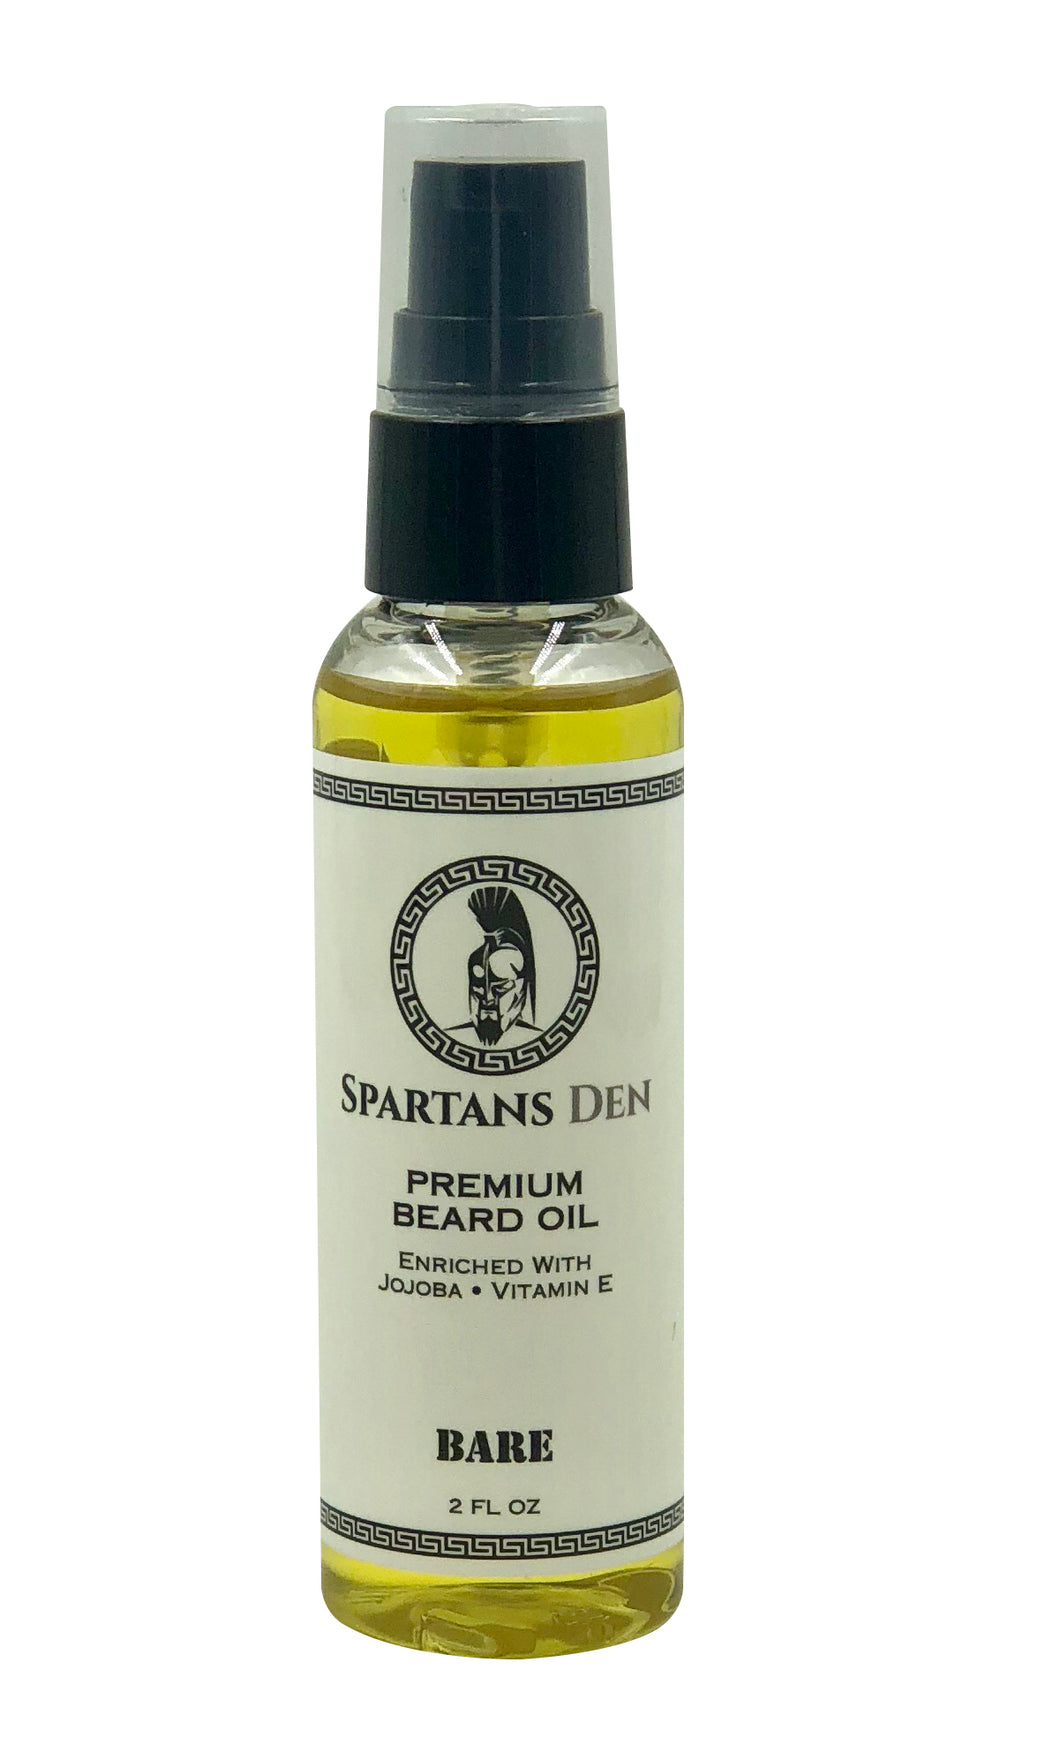 BARE BEARD OIL - 2 oz.